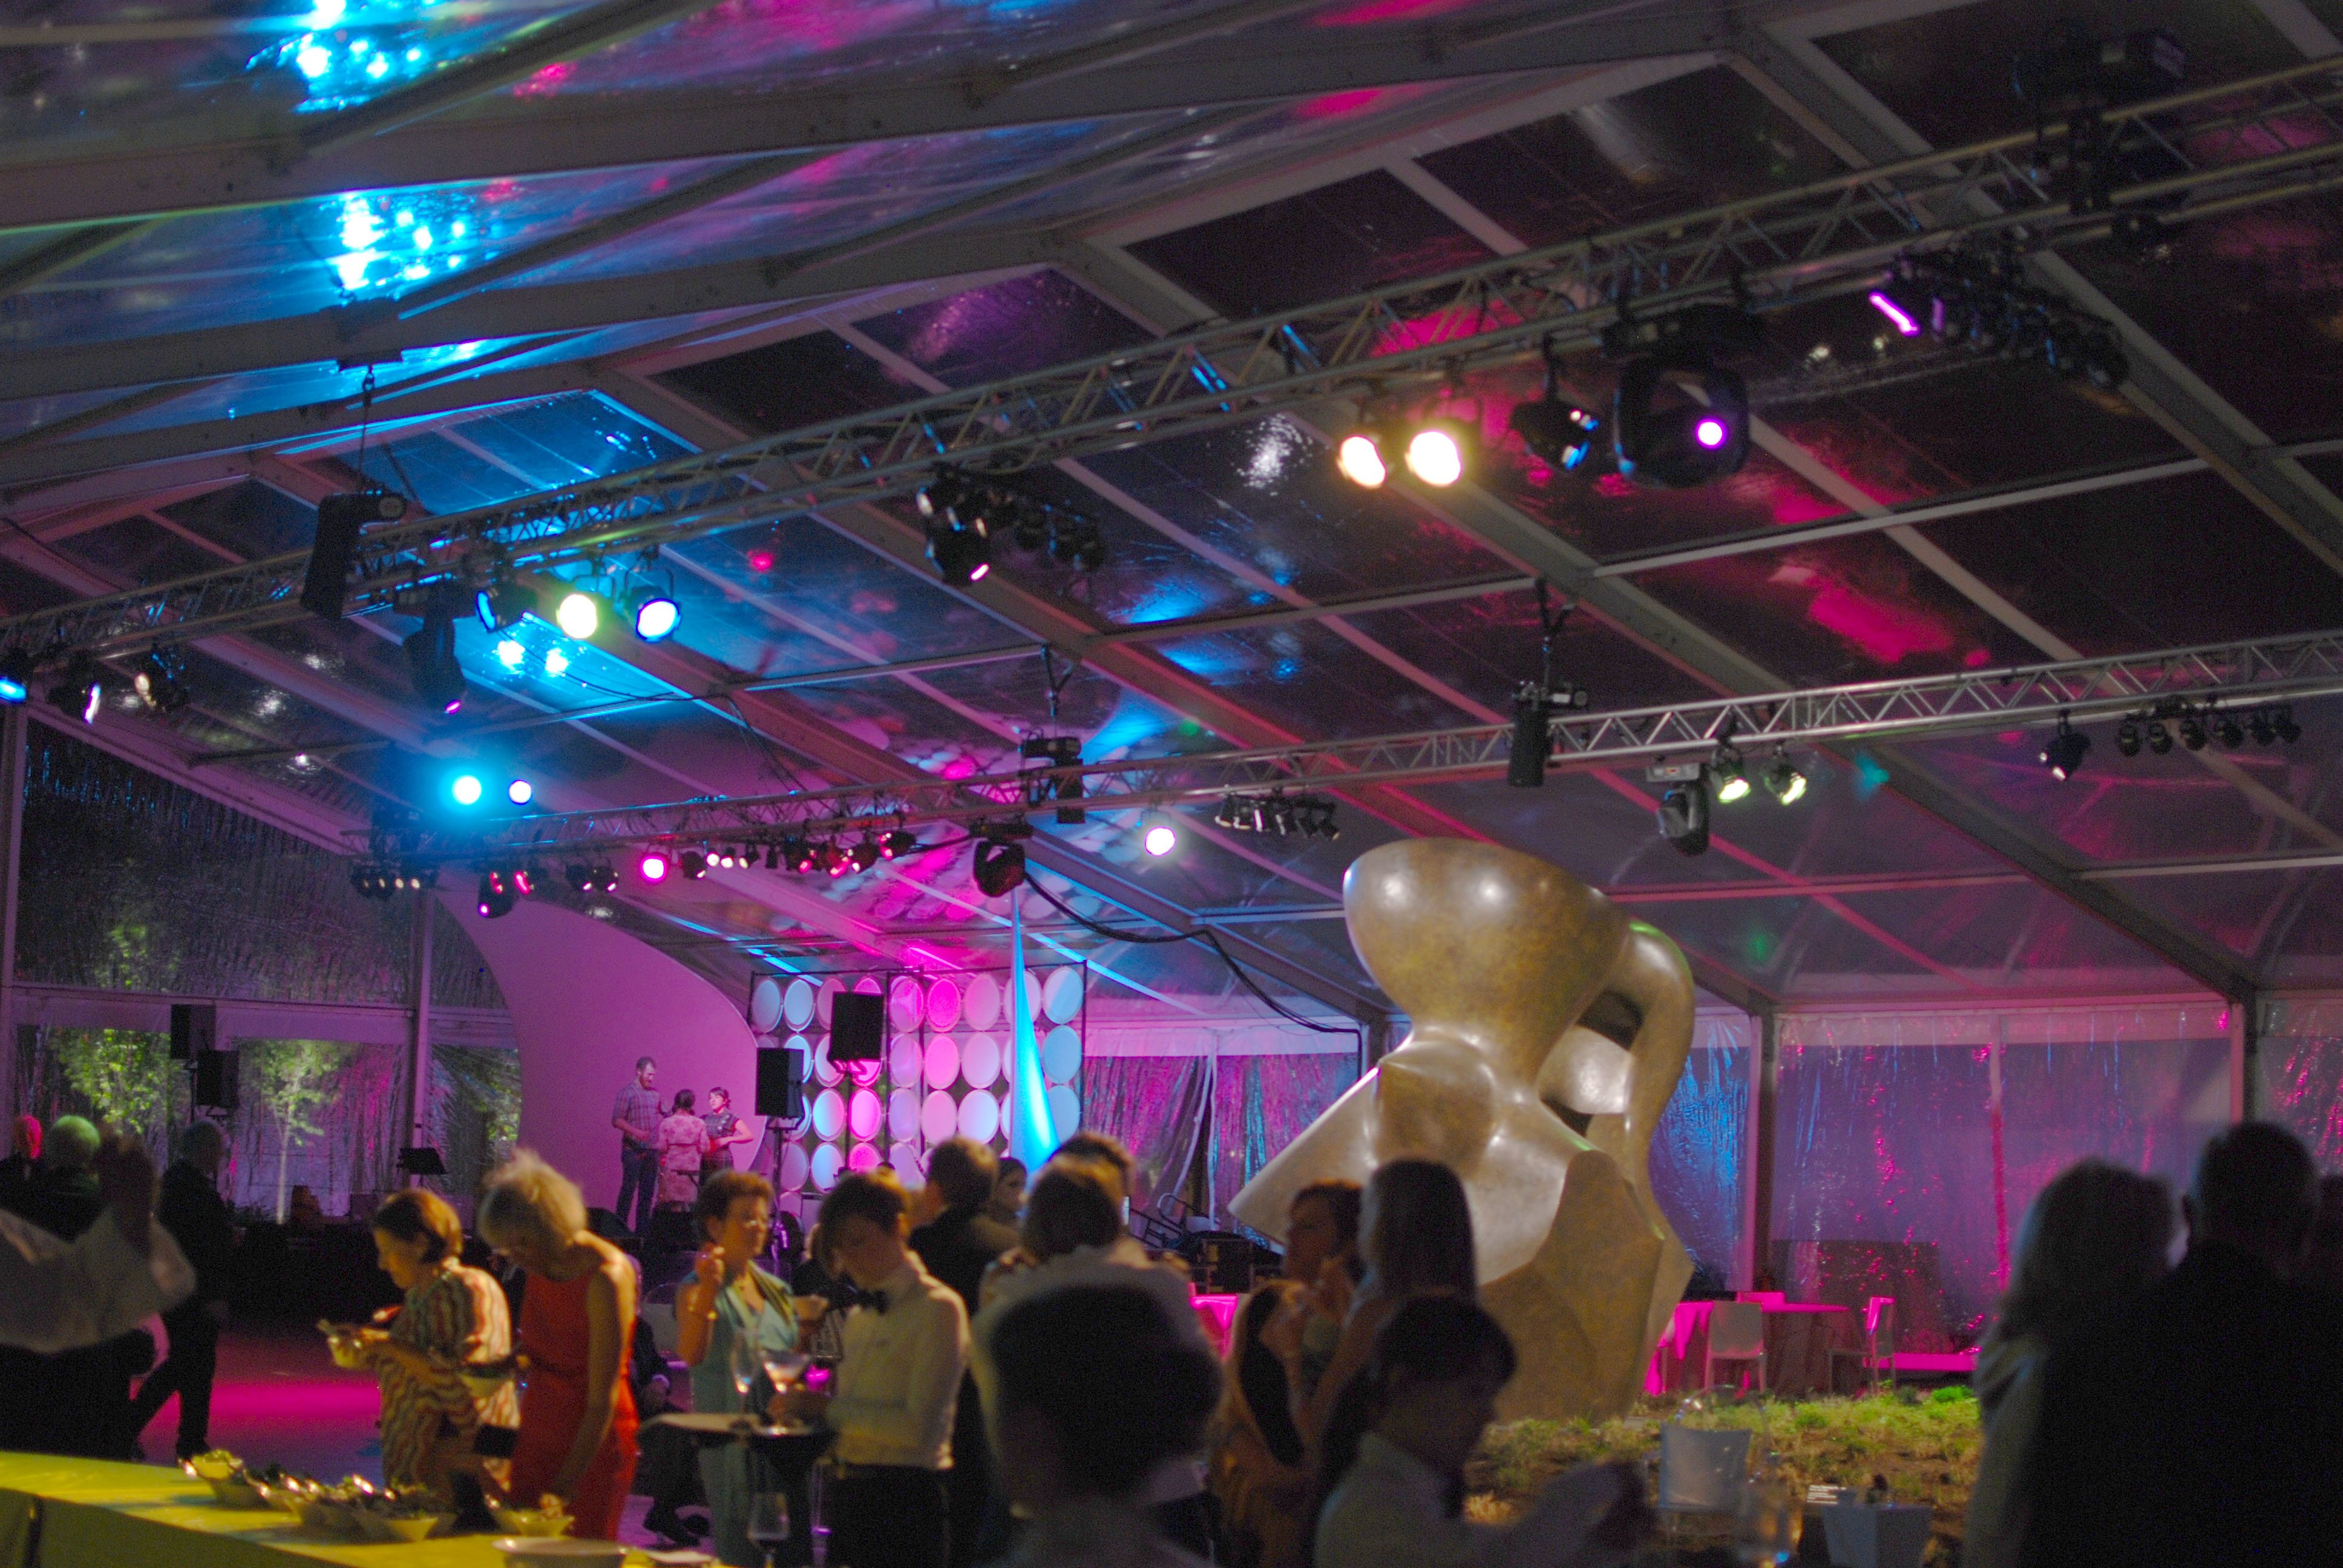 Tent at a Museum Event Lit with Two Truss Spans